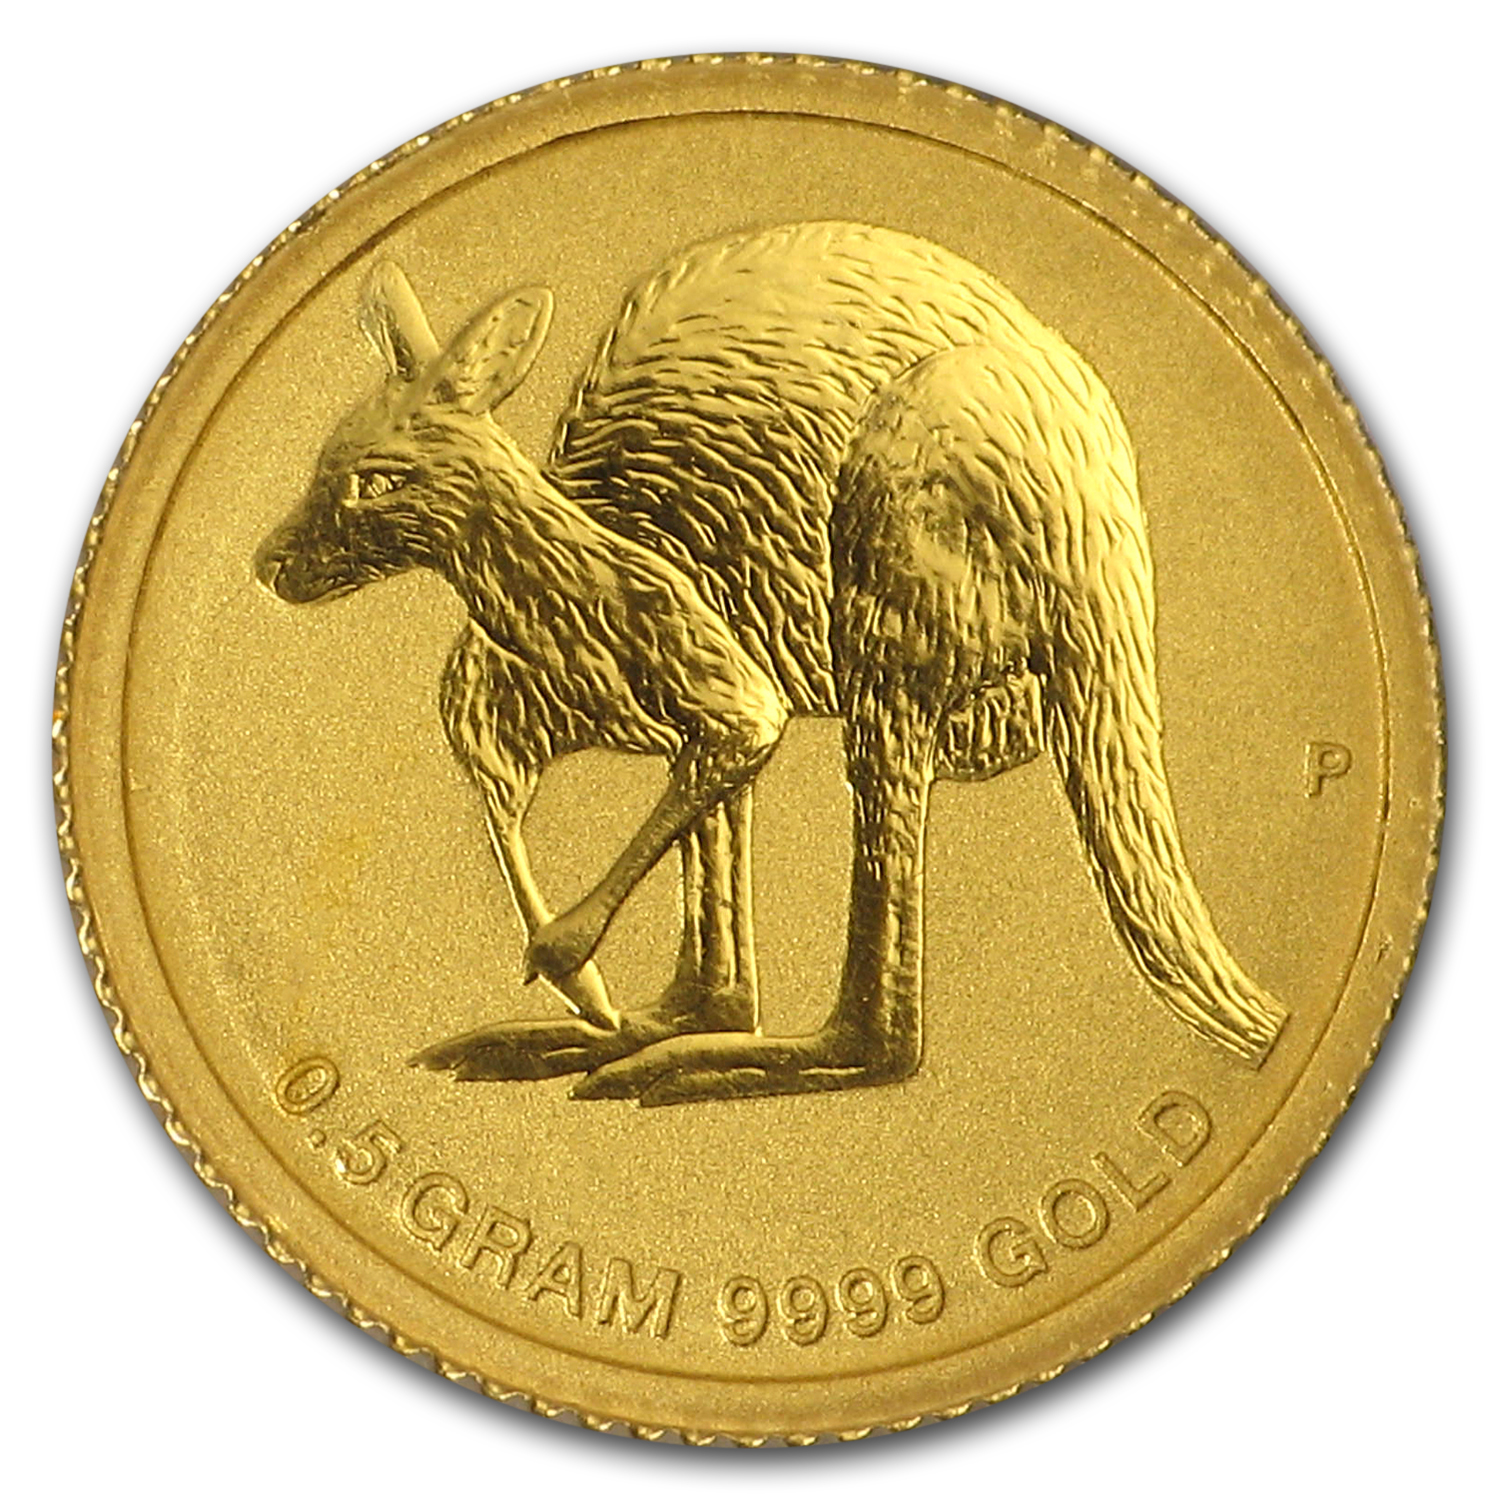 2011 1/2 Gram Australian Gold Kangaroo Mini Roo - On Gift Card